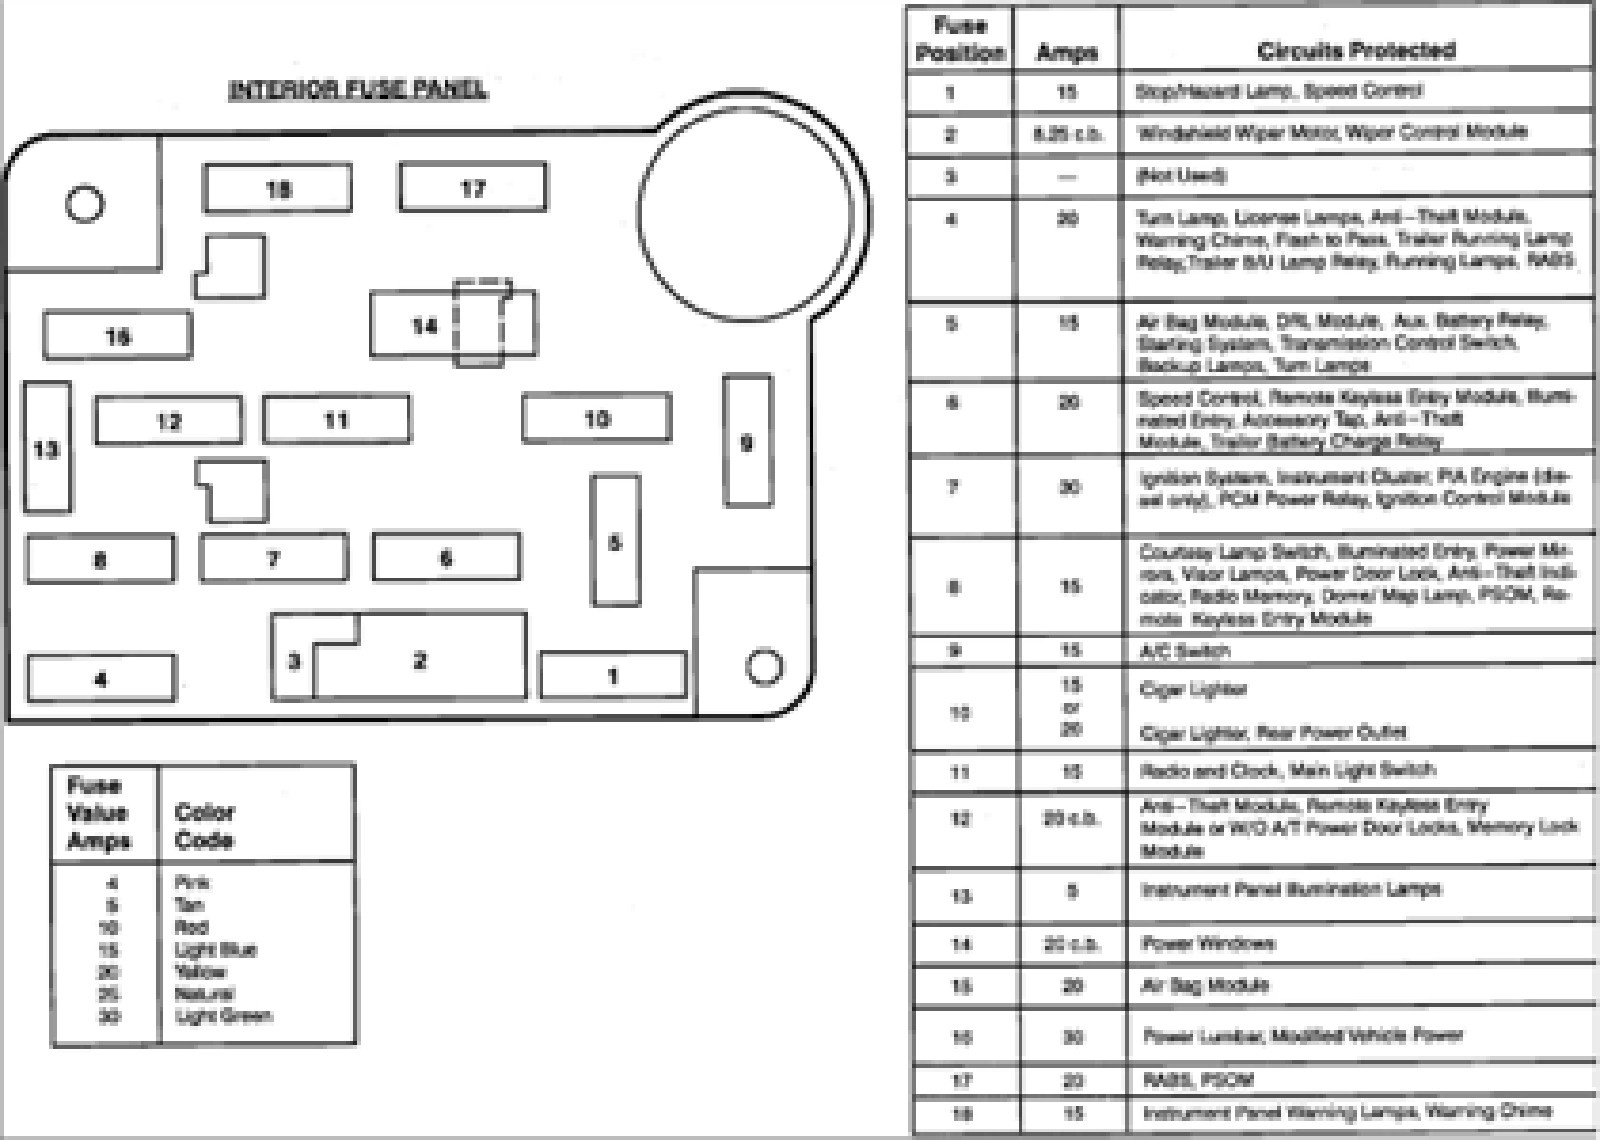 1997 Chevy Blazer Wiring Diagram Chime Will Be A 1998 Radio Diagrams Ford E 150 Questions Fuse For 1993 96